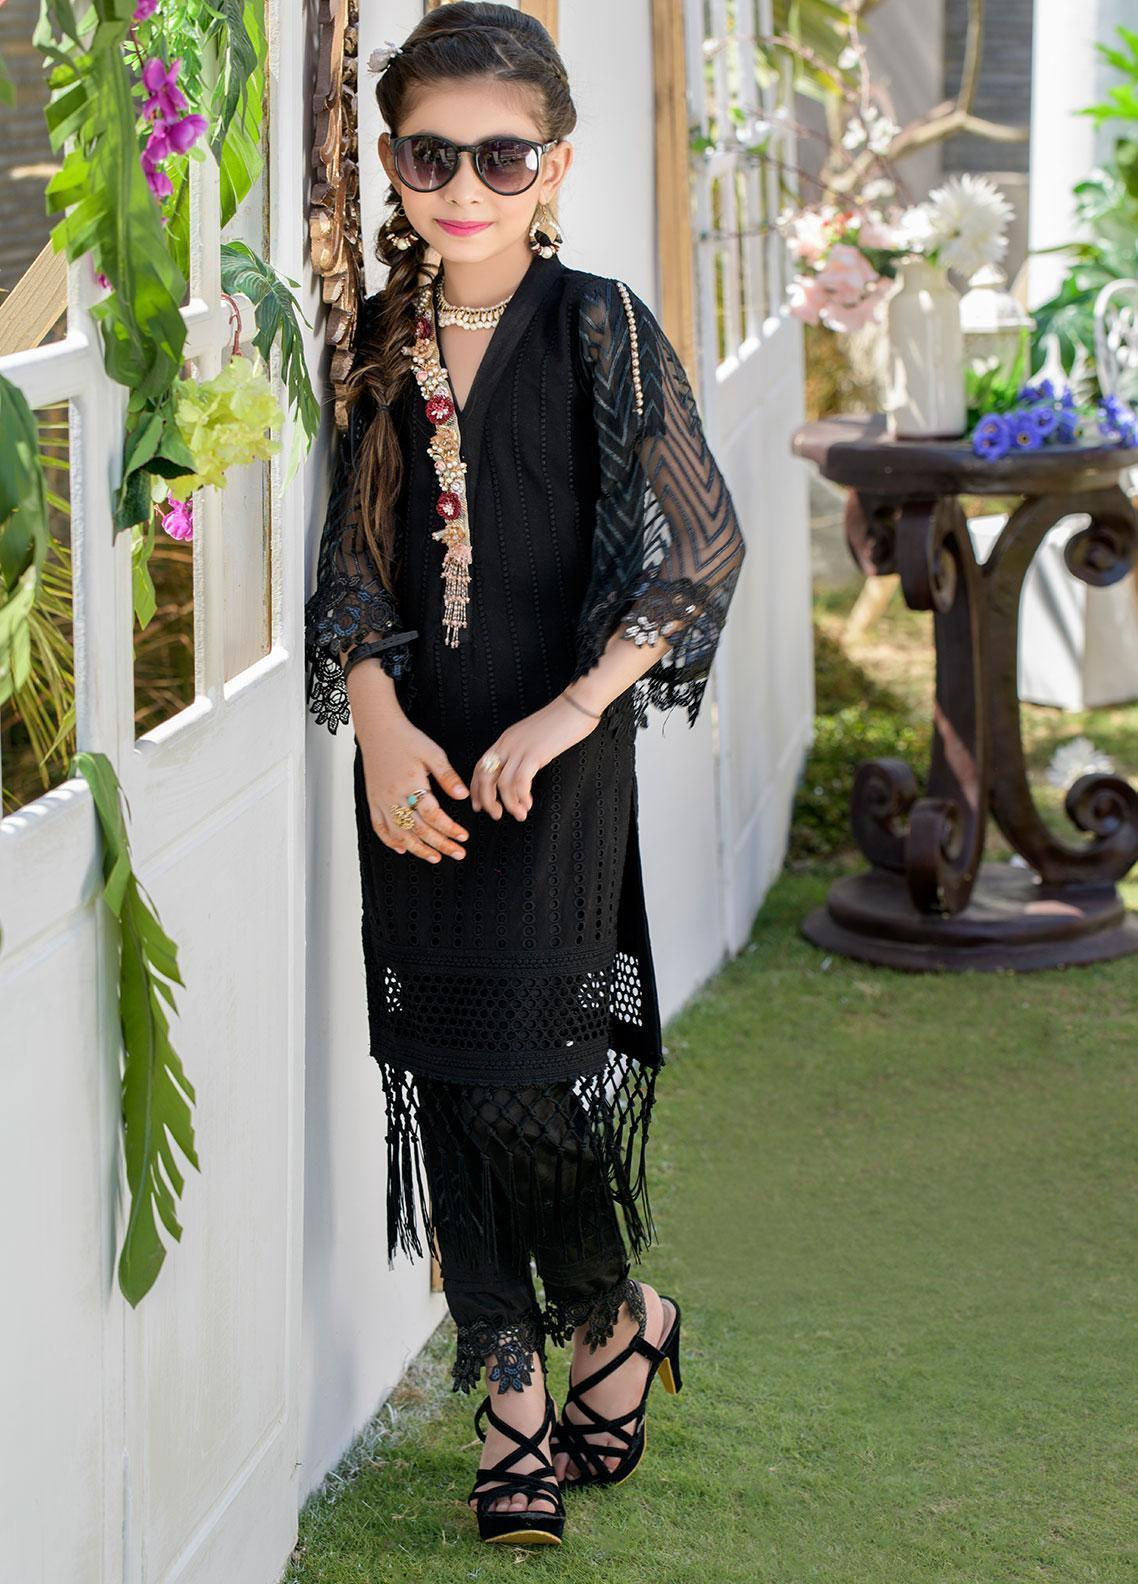 Chic Ophicial Chikankari Formal 2 Piece Suit for Girls - CH40 Black Rose